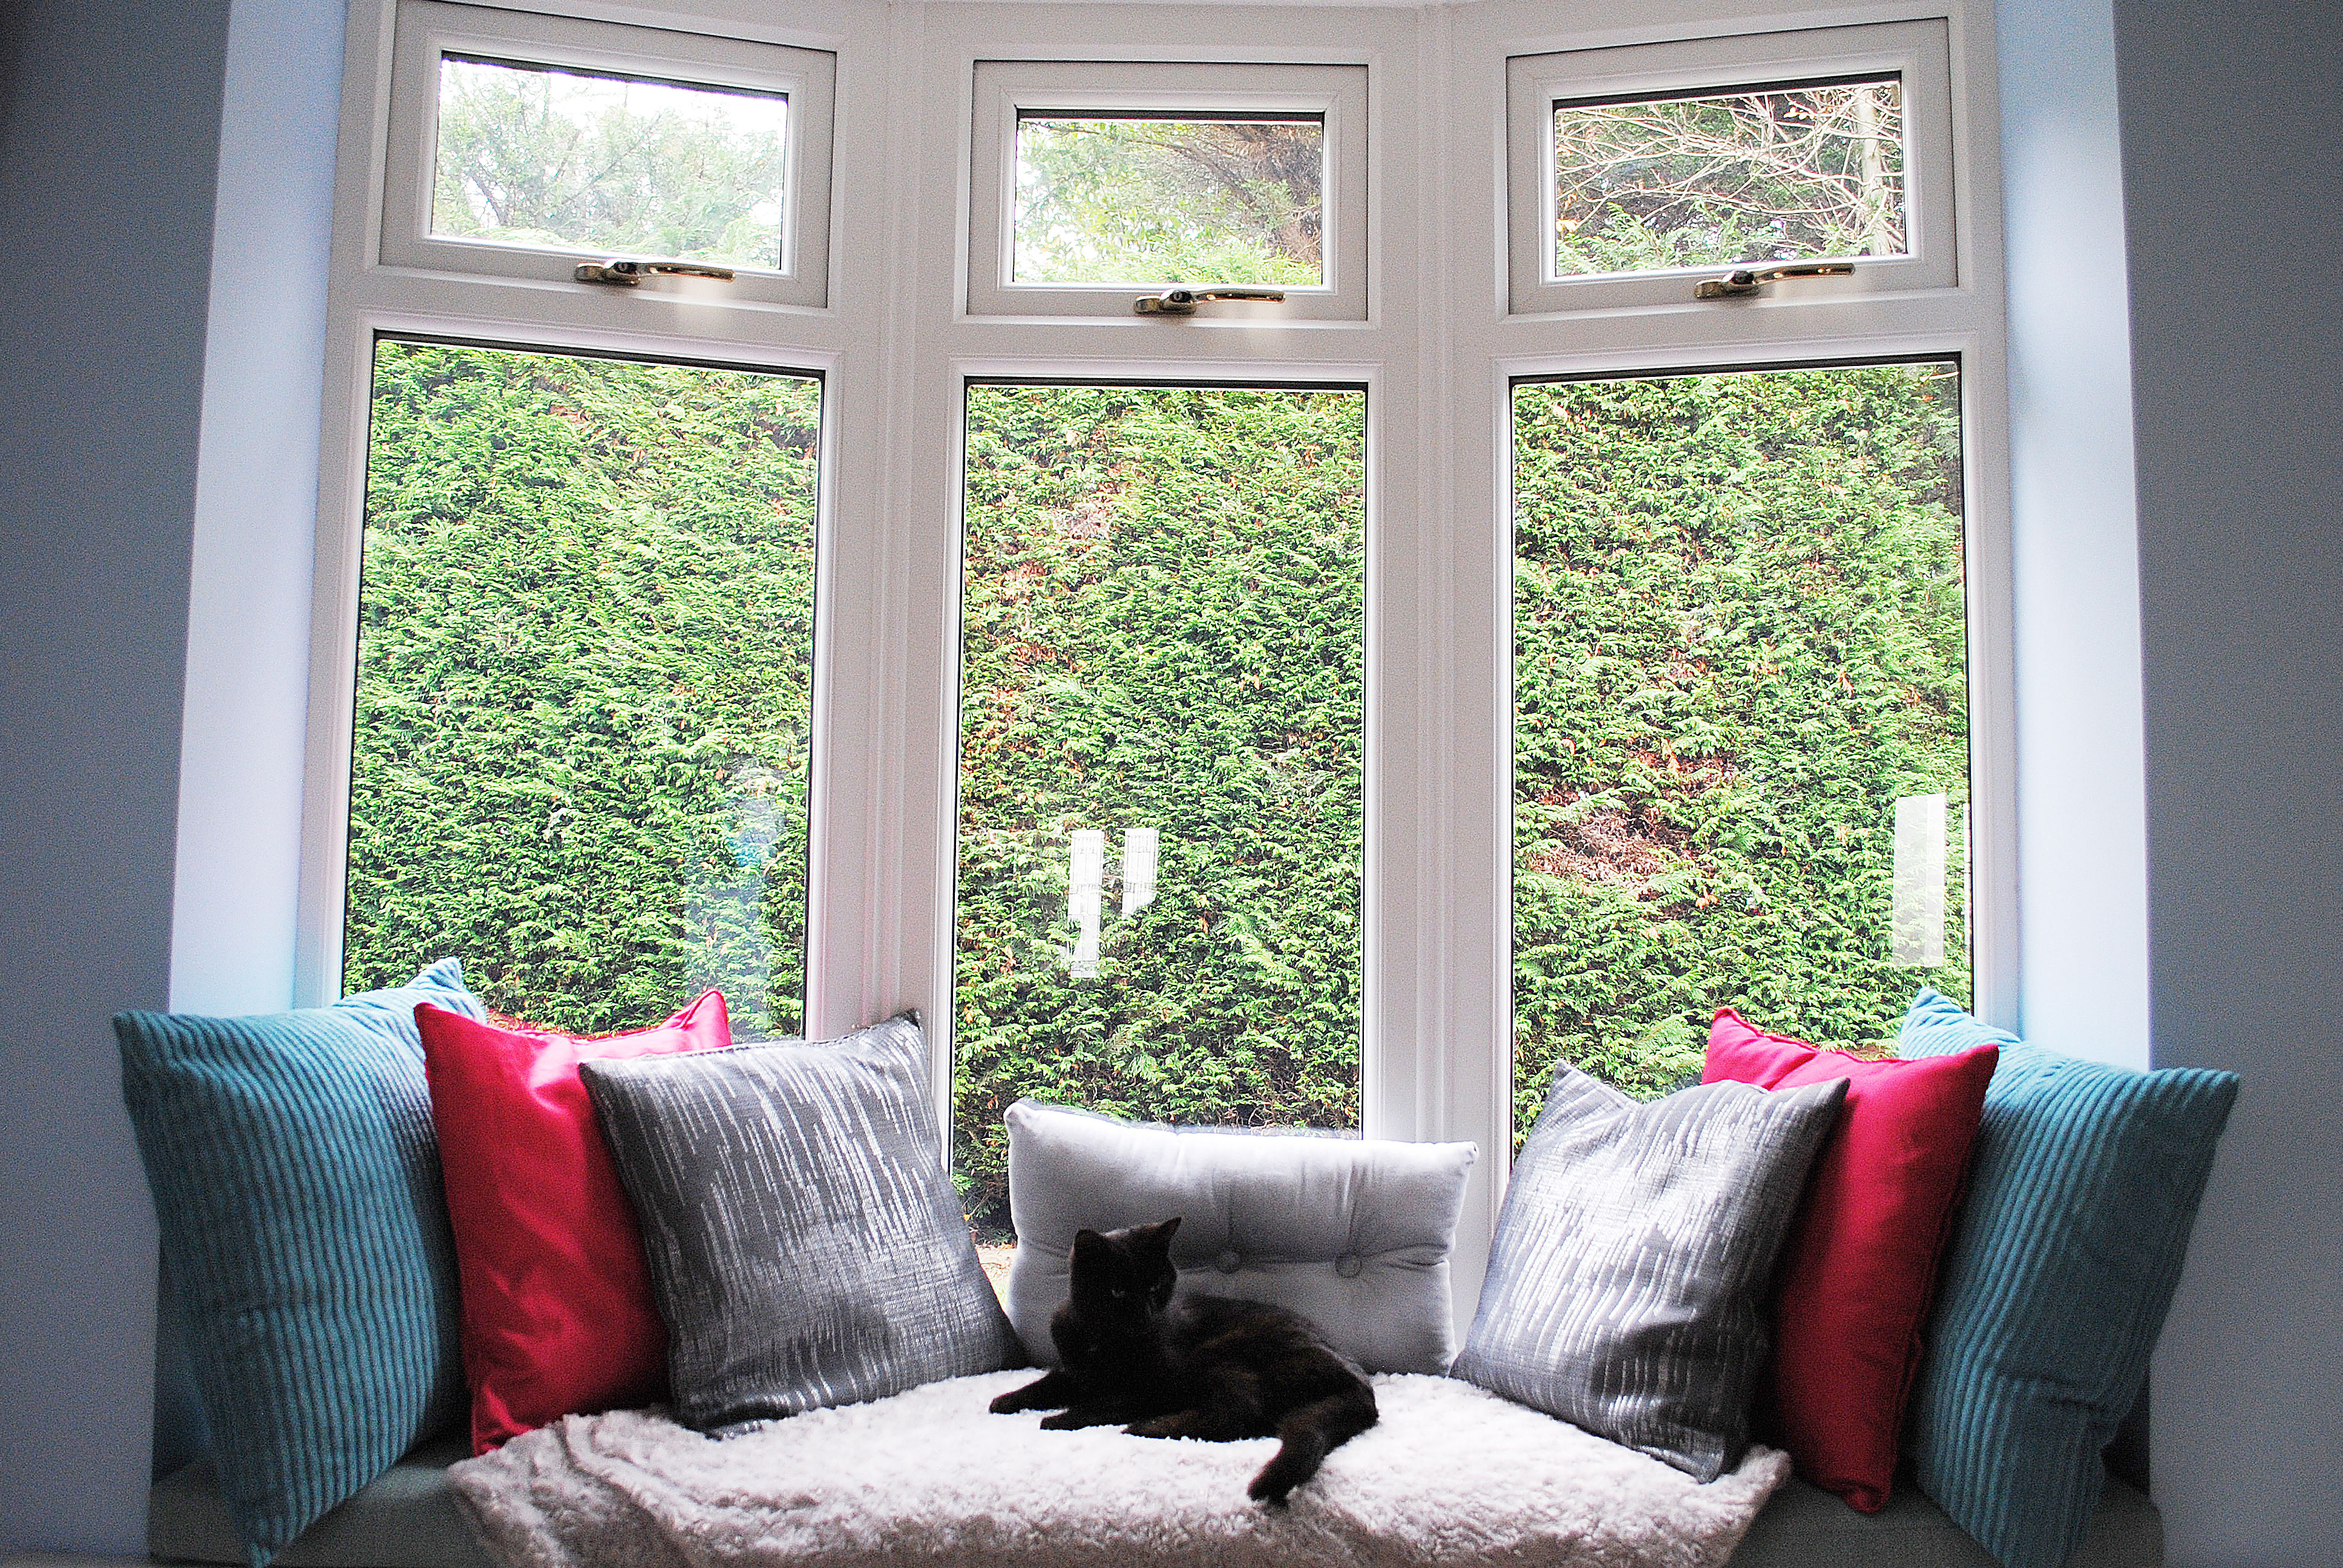 Internal View of Our Bay Windows